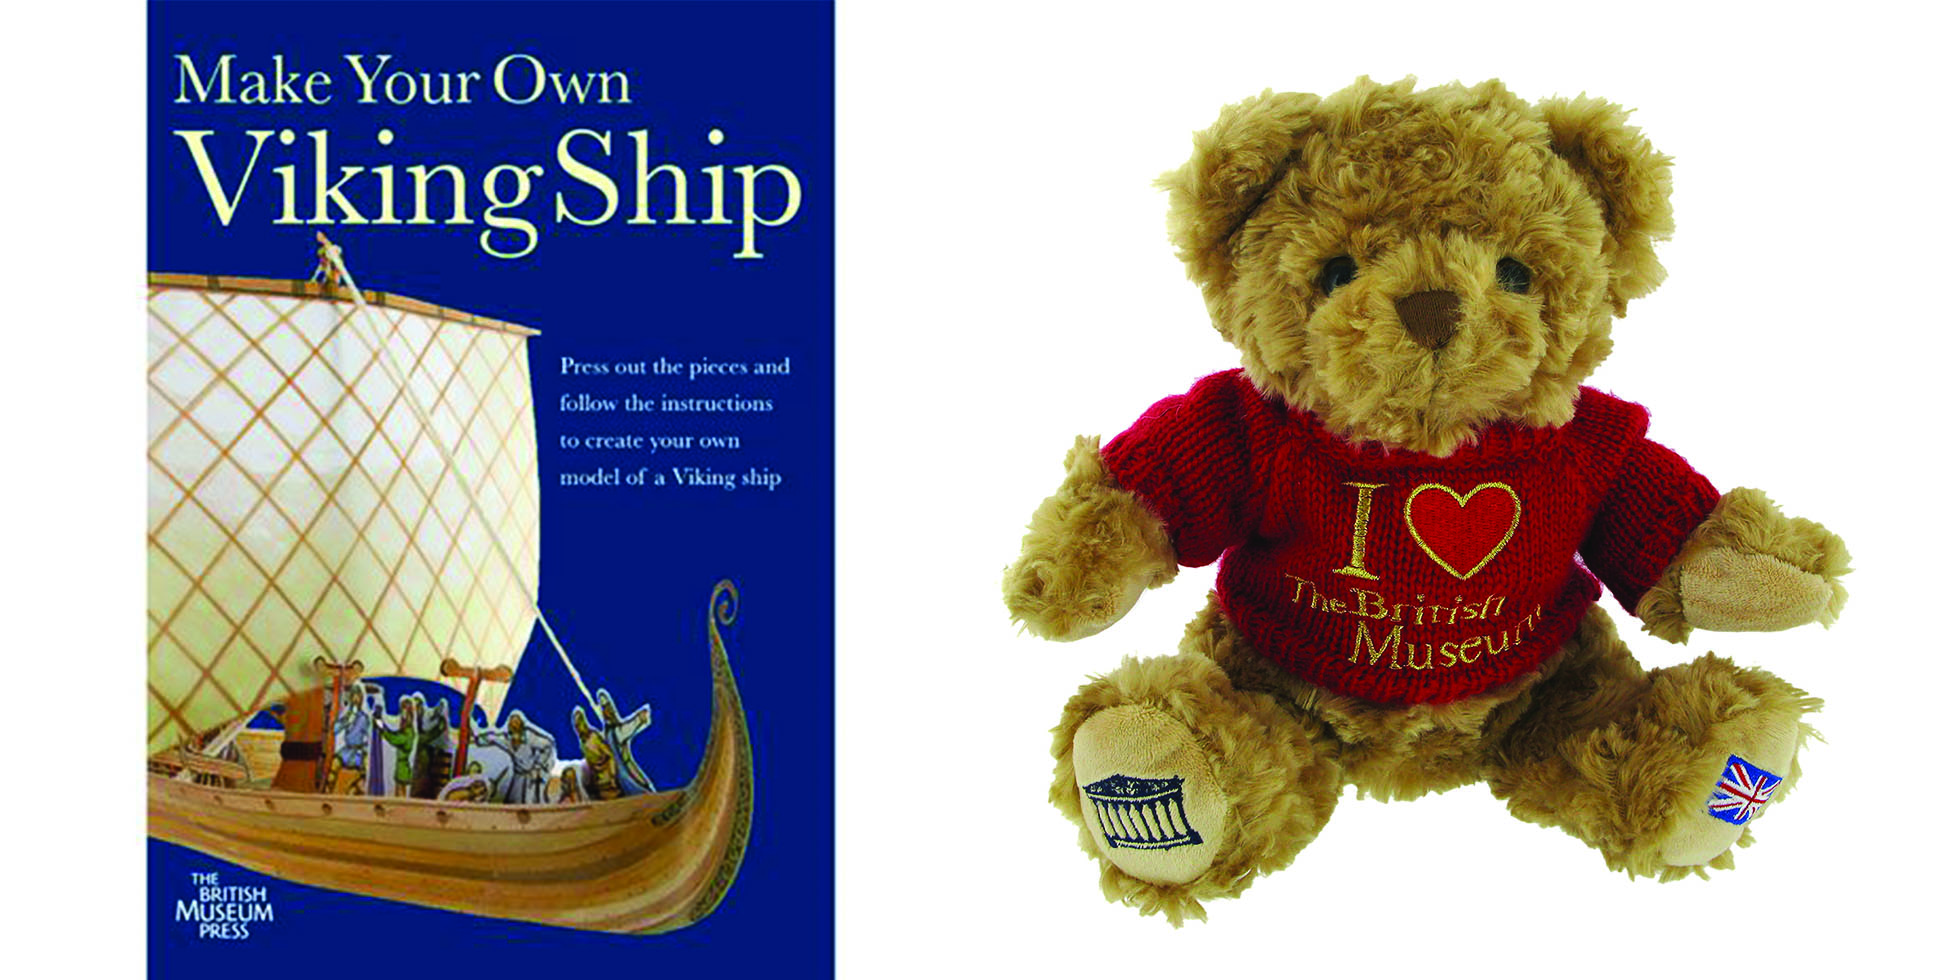 On the left, the front cover of 'Make Your Own Viking Ship'. On the right, a teddy bear wearing an 'I heart the British Museum' top.